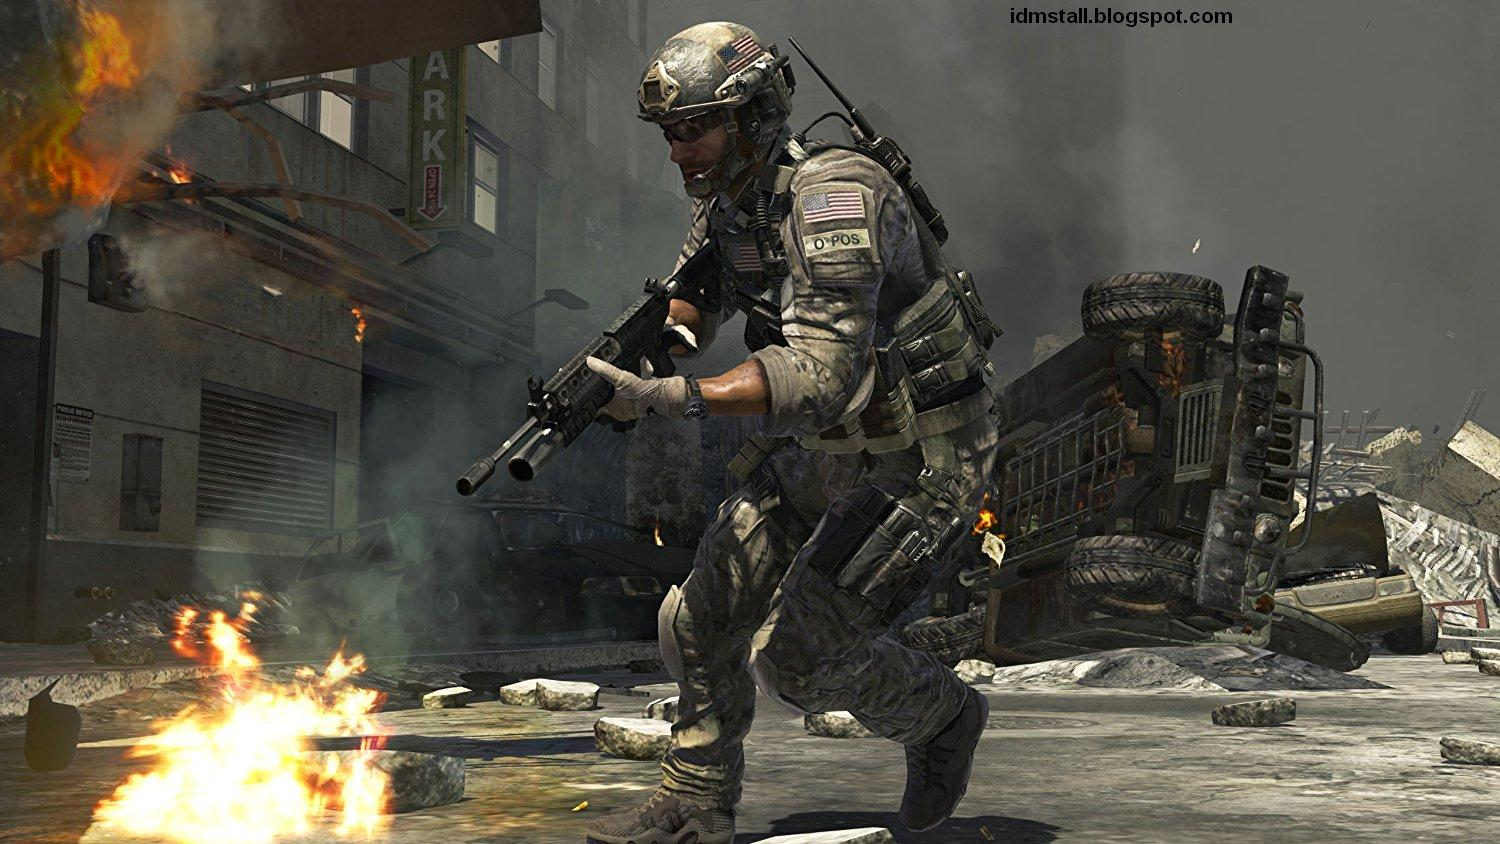 Call of Duty Modern Wafare 2 serial key or number